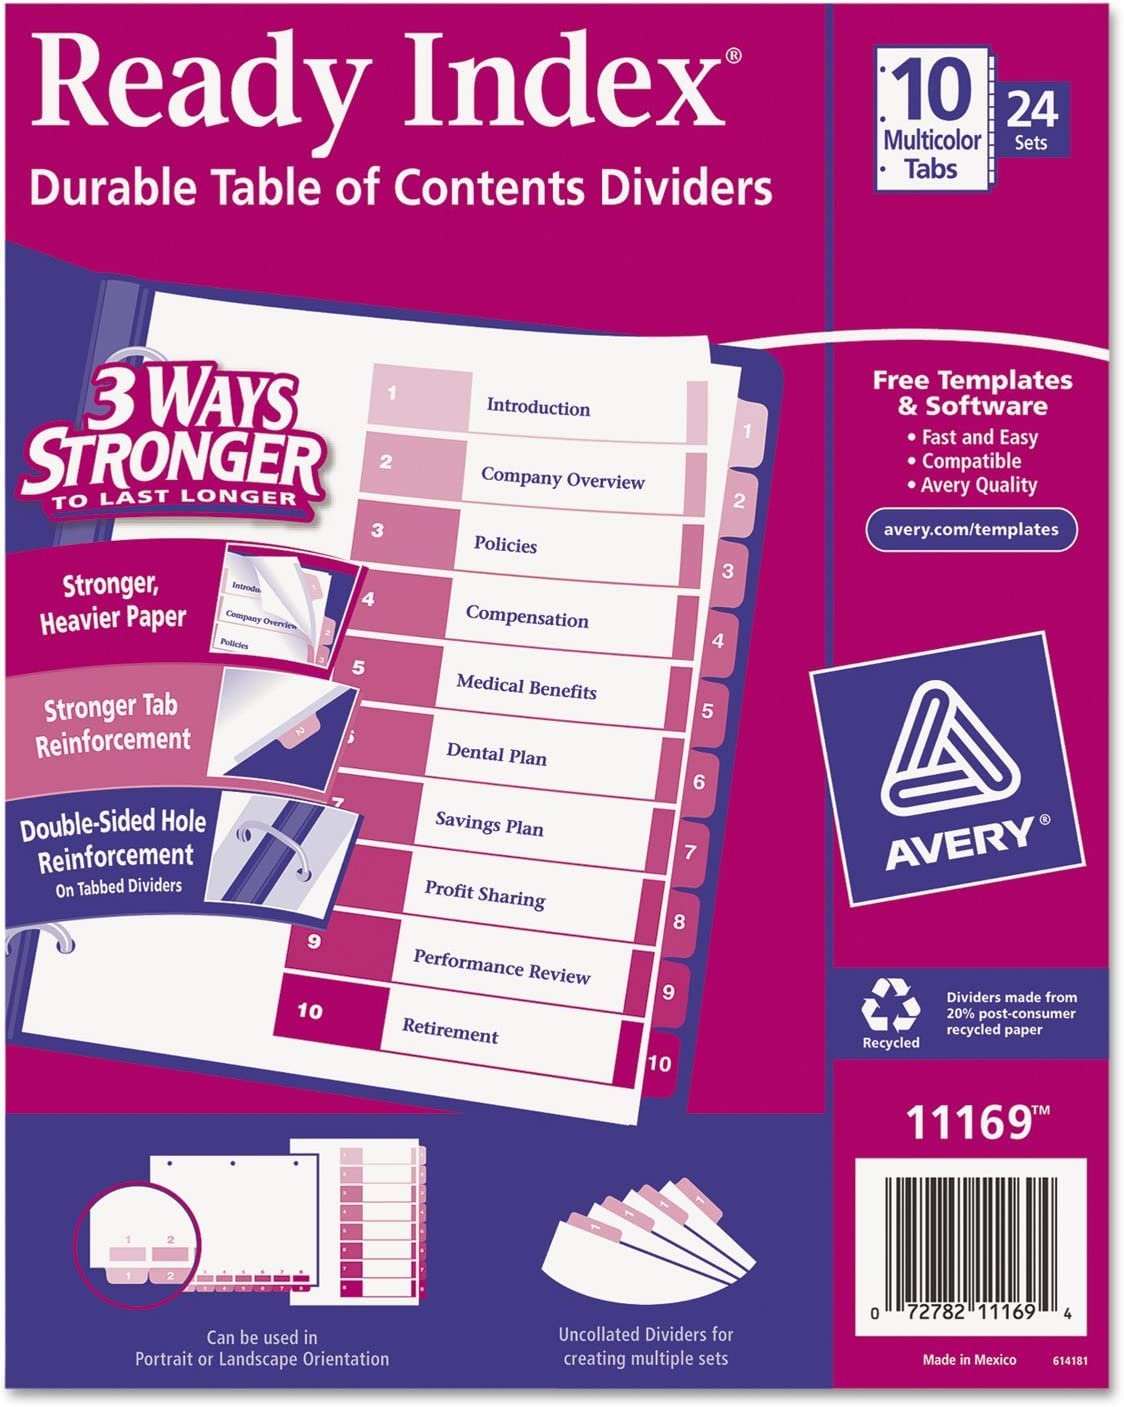 AVE11169 Avery Ready Index Table//Contents Dividers